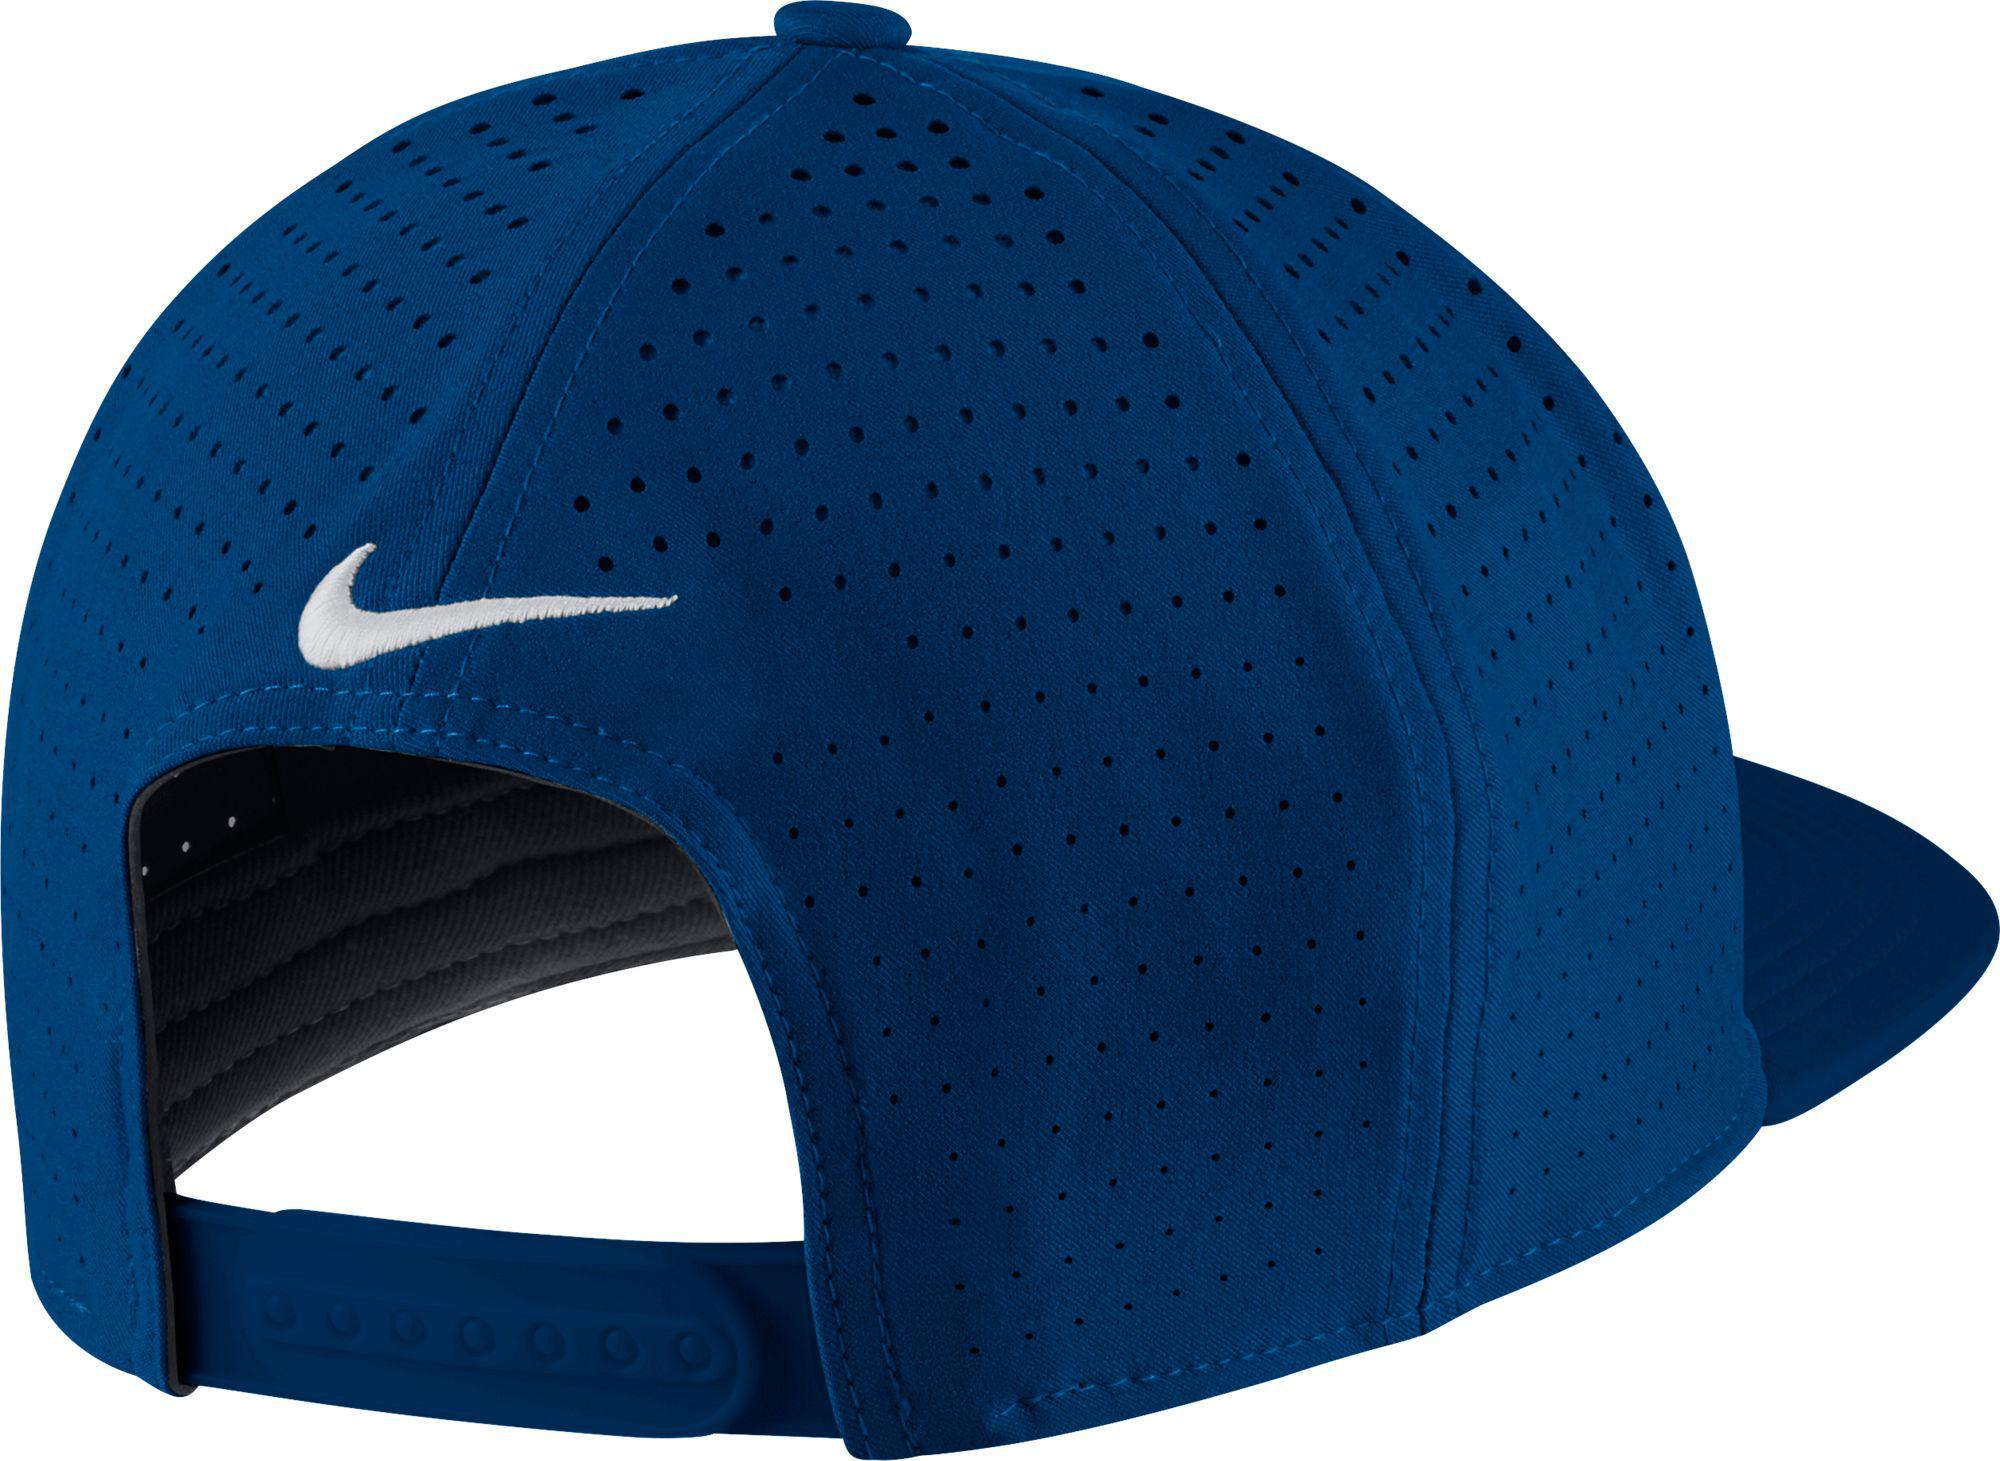 Lyst - Nike Perforated Snapback Golf Hat in Blue for Men 19259bfd358b